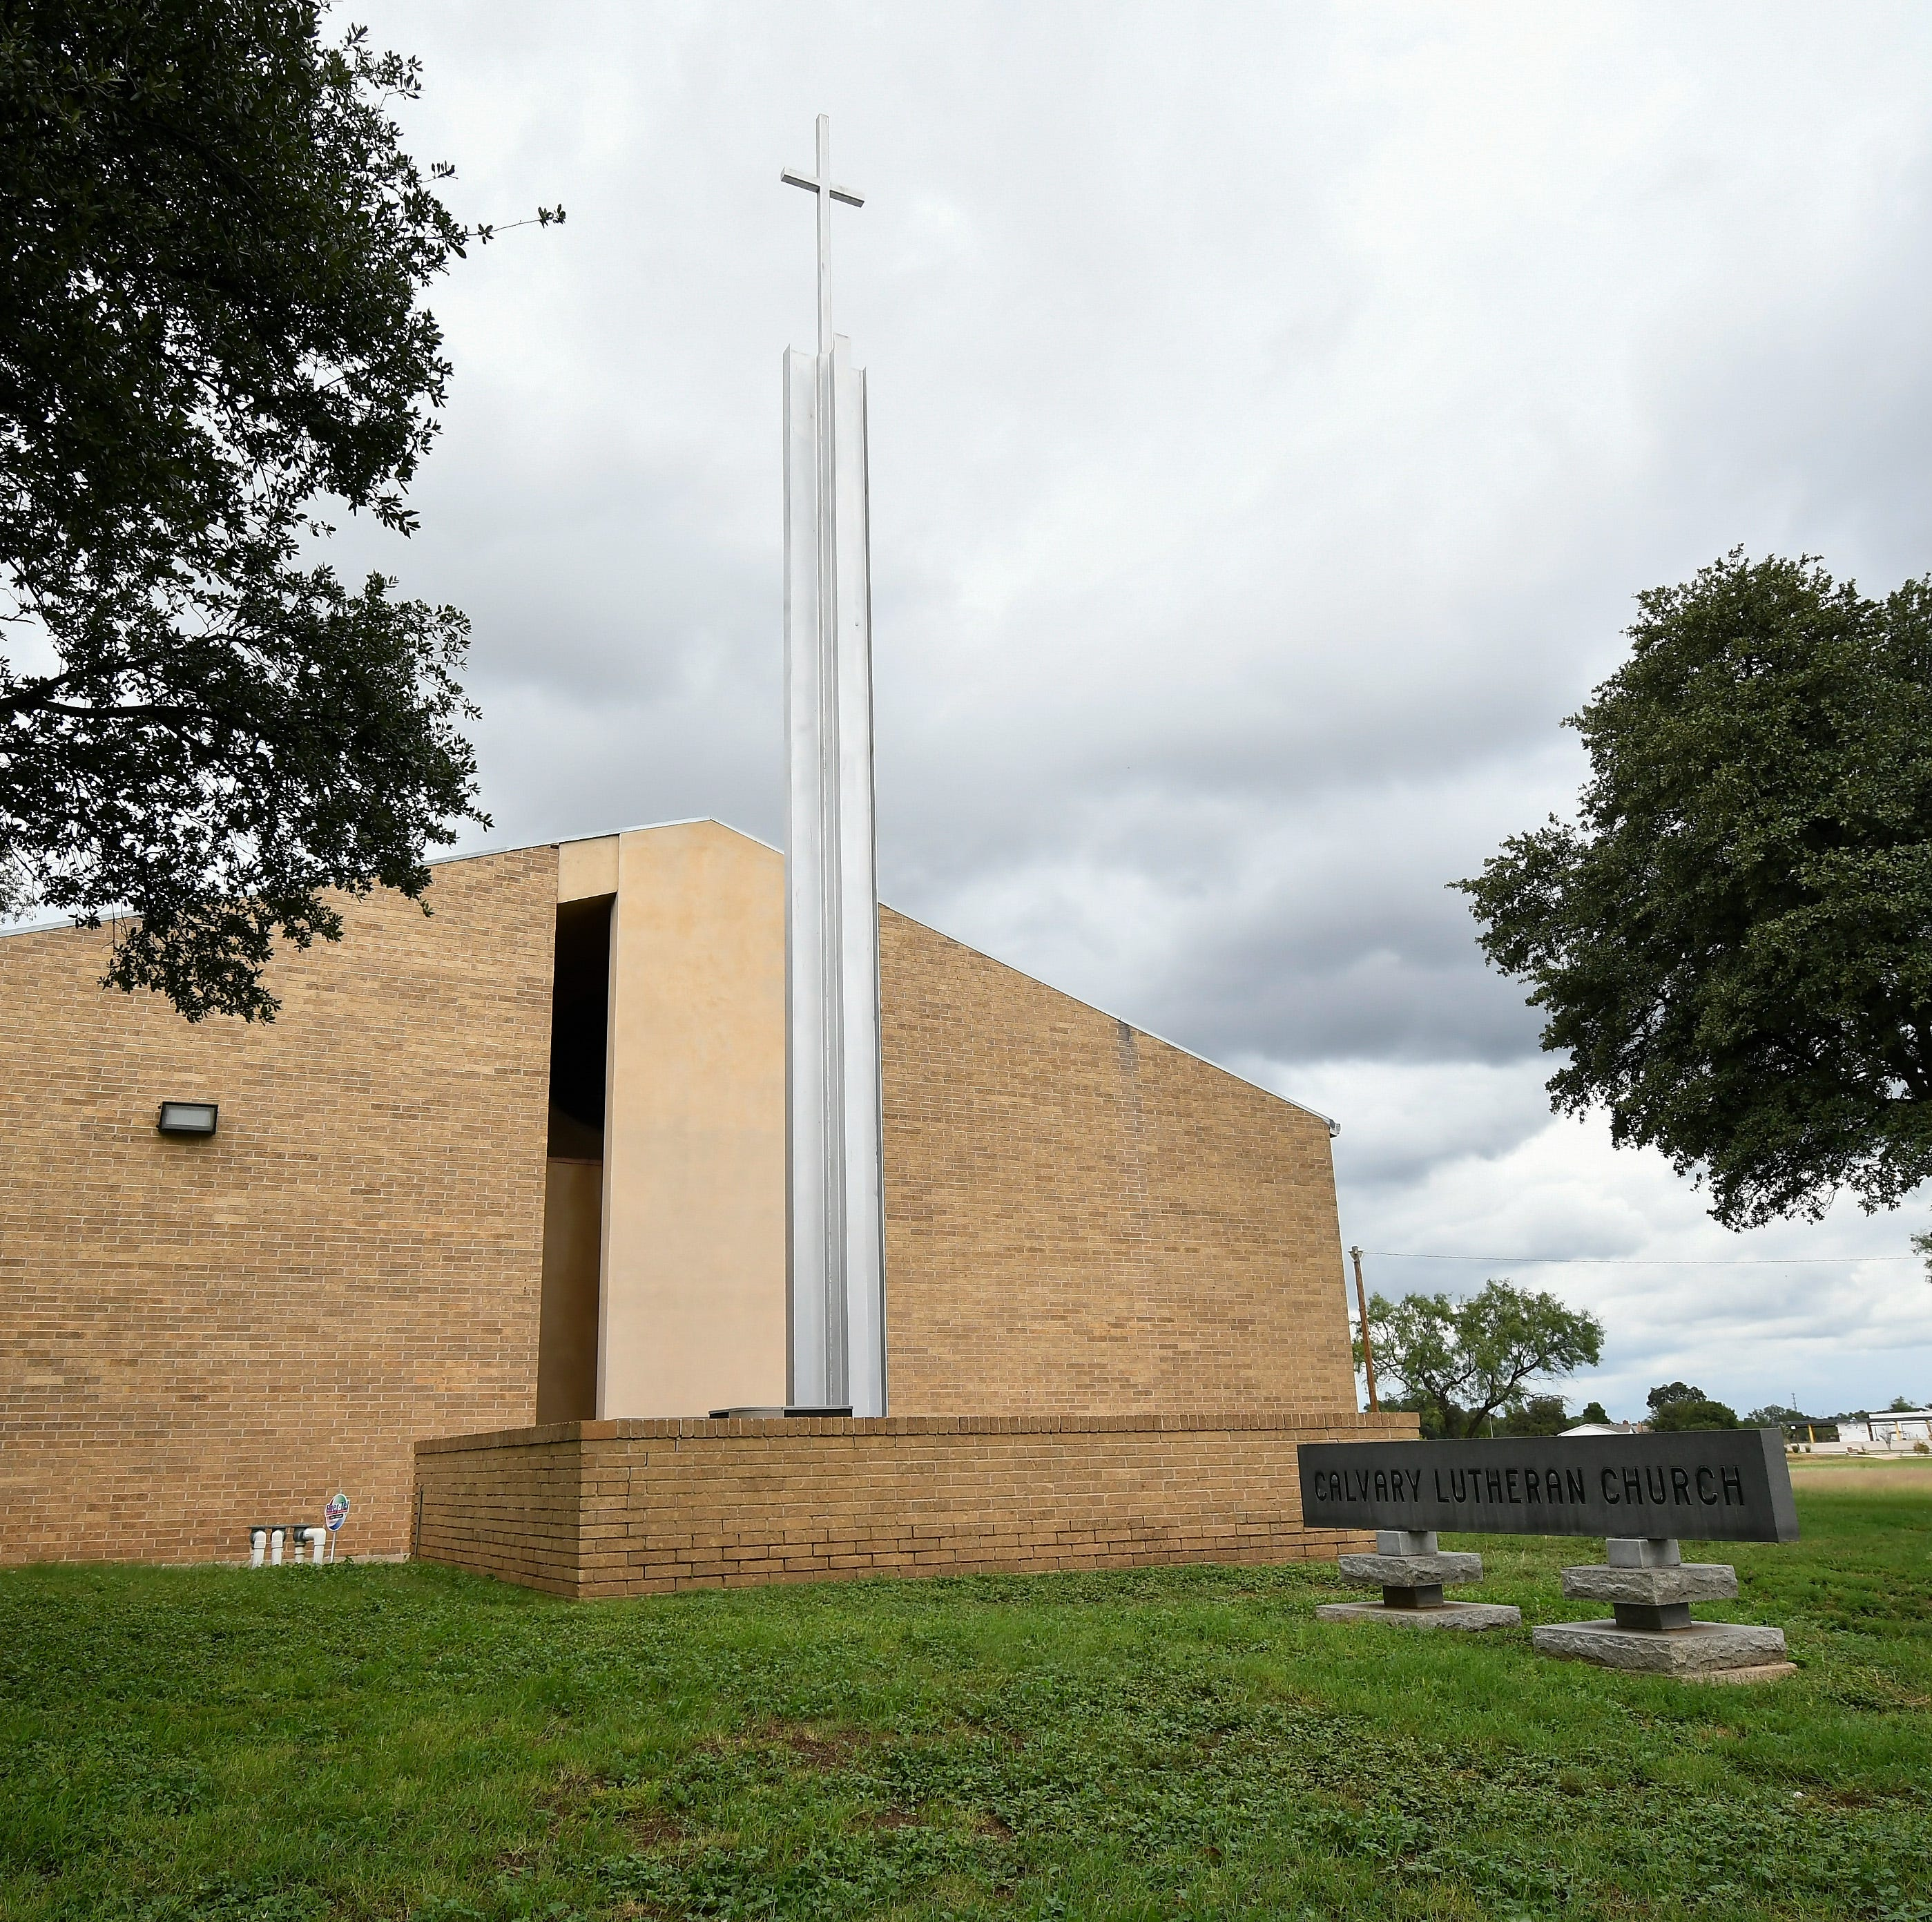 Calvary Lutheran established in San Angelo after WWII